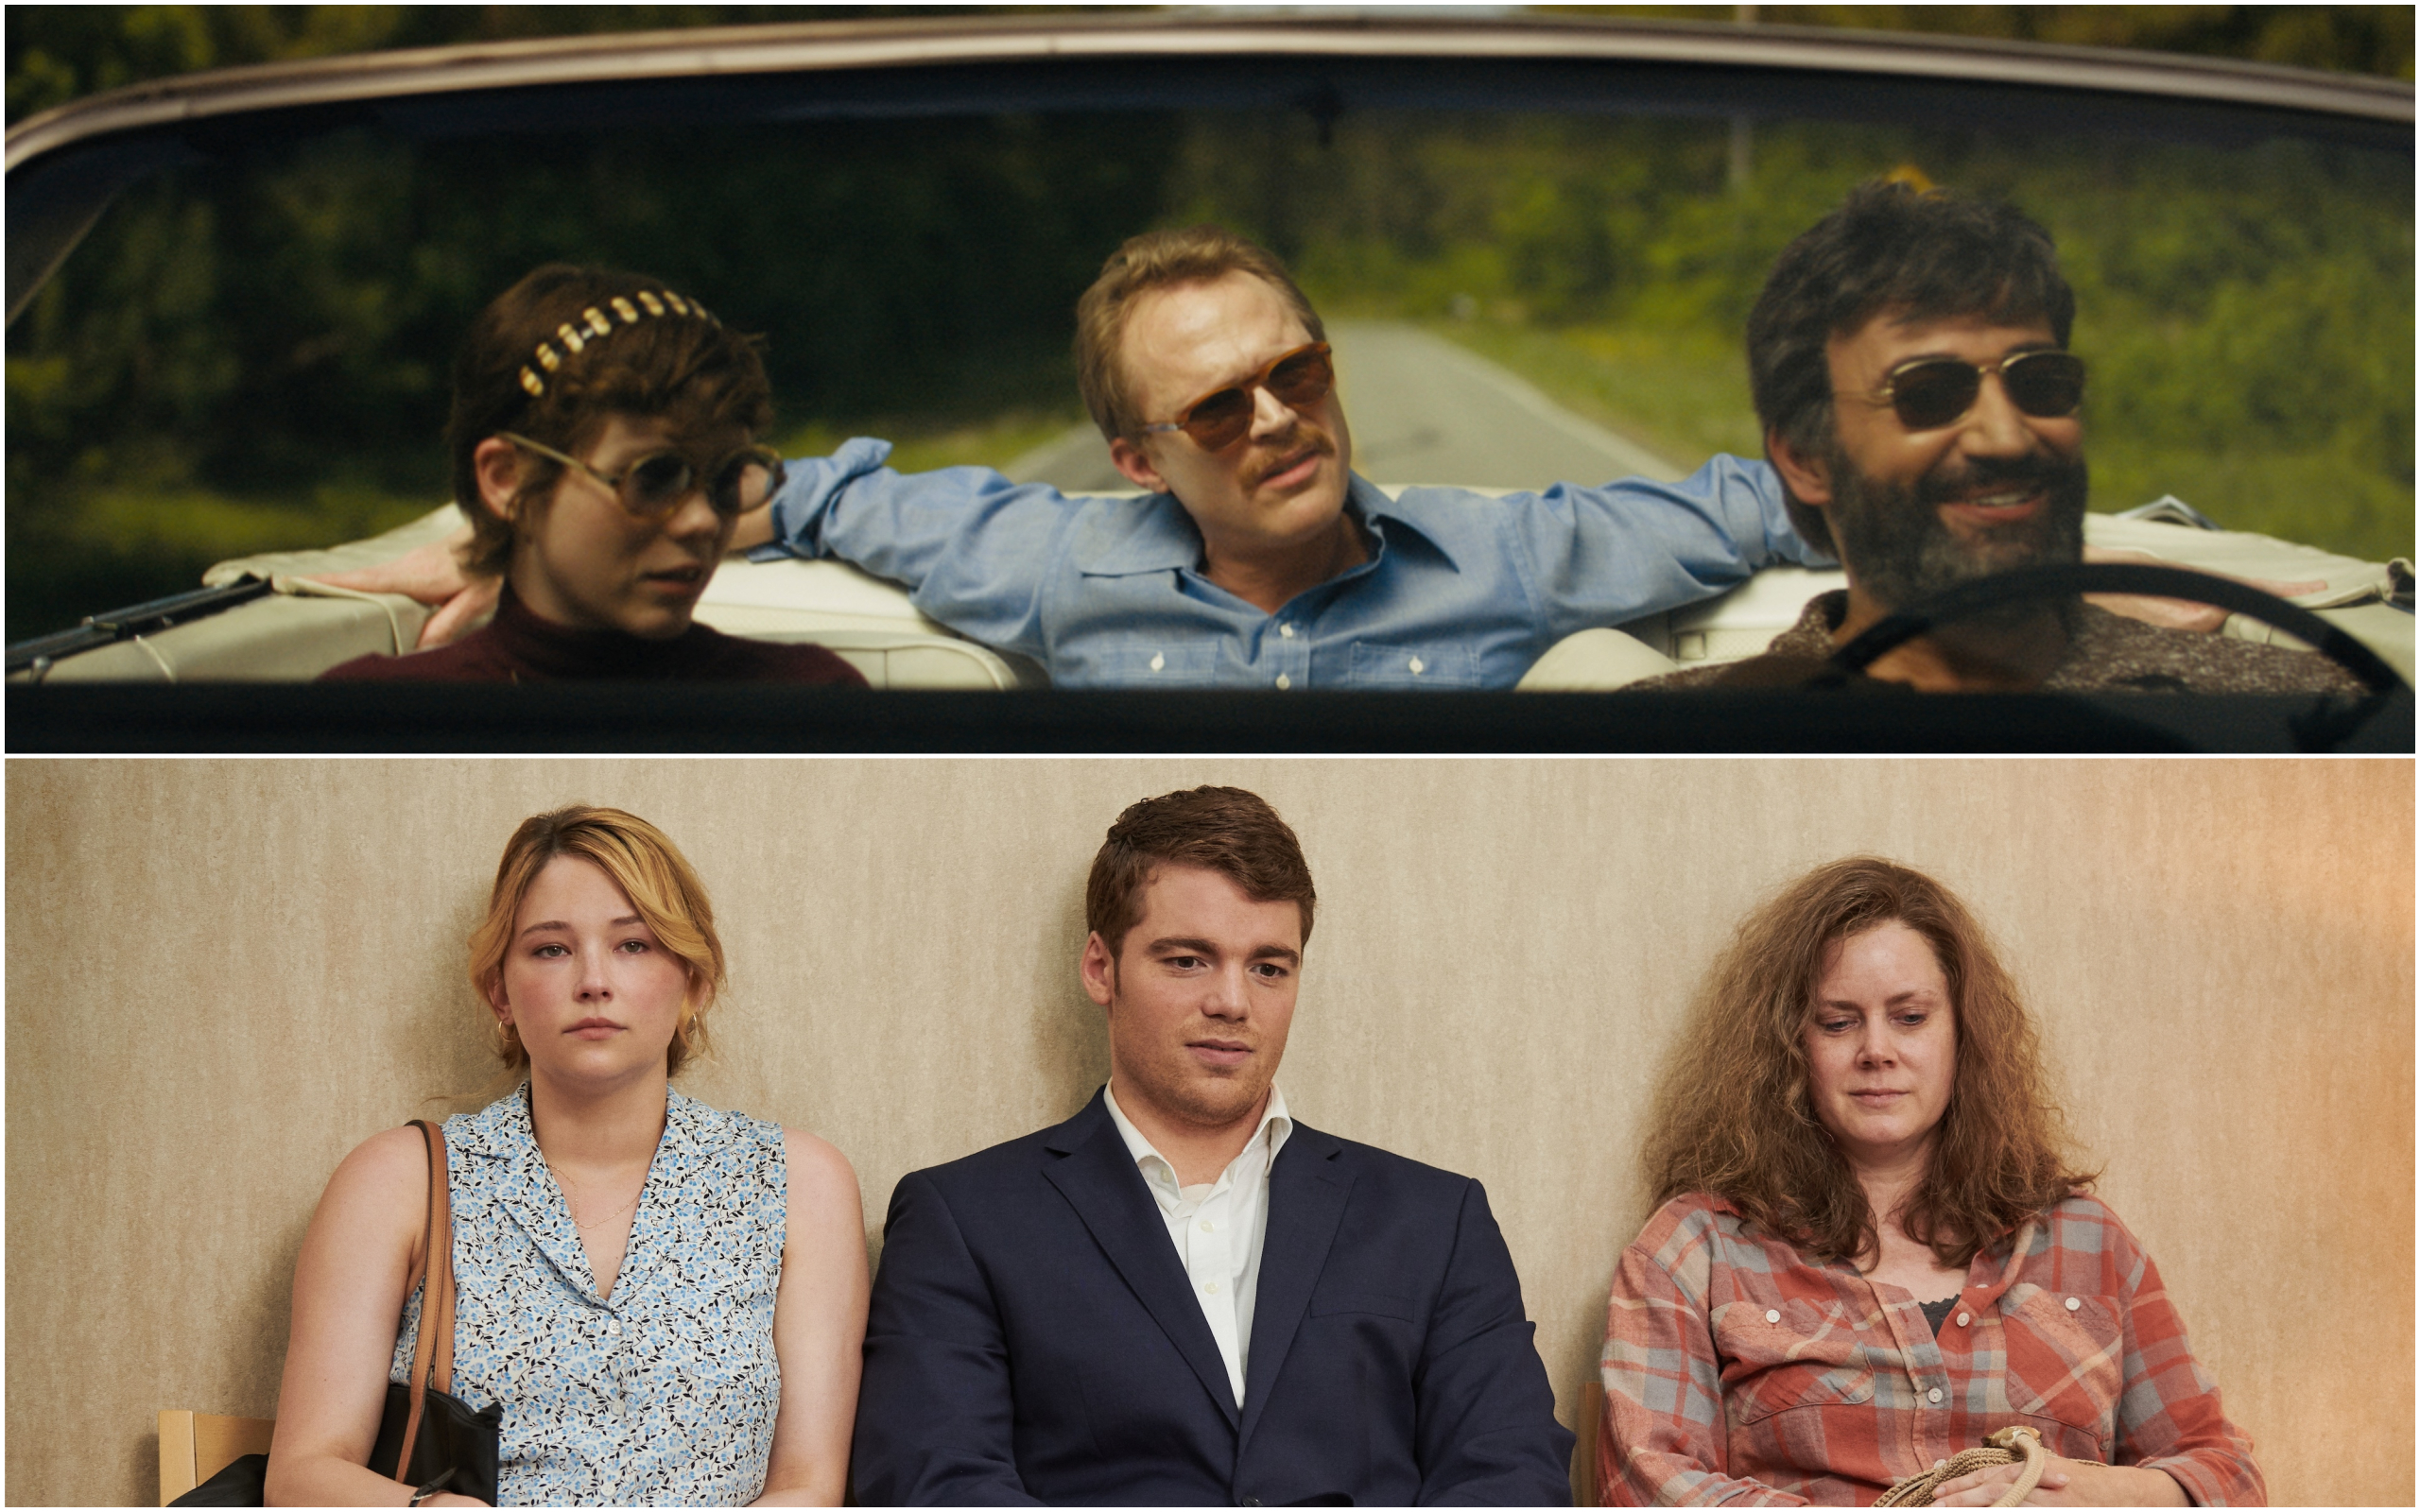 """Top photo: Left to right, Sophia Lillis, Paul Bettany and Peter Macdissi in """"Uncle Frank."""" (Courtesy Amazon Studios) Bottom photo: Left to right:,Haley Bennett, Gabriel Basso and Amy Adams in """"Hillbilly Elegy."""" (Courtesy Lacey Terrell/Netflix)"""